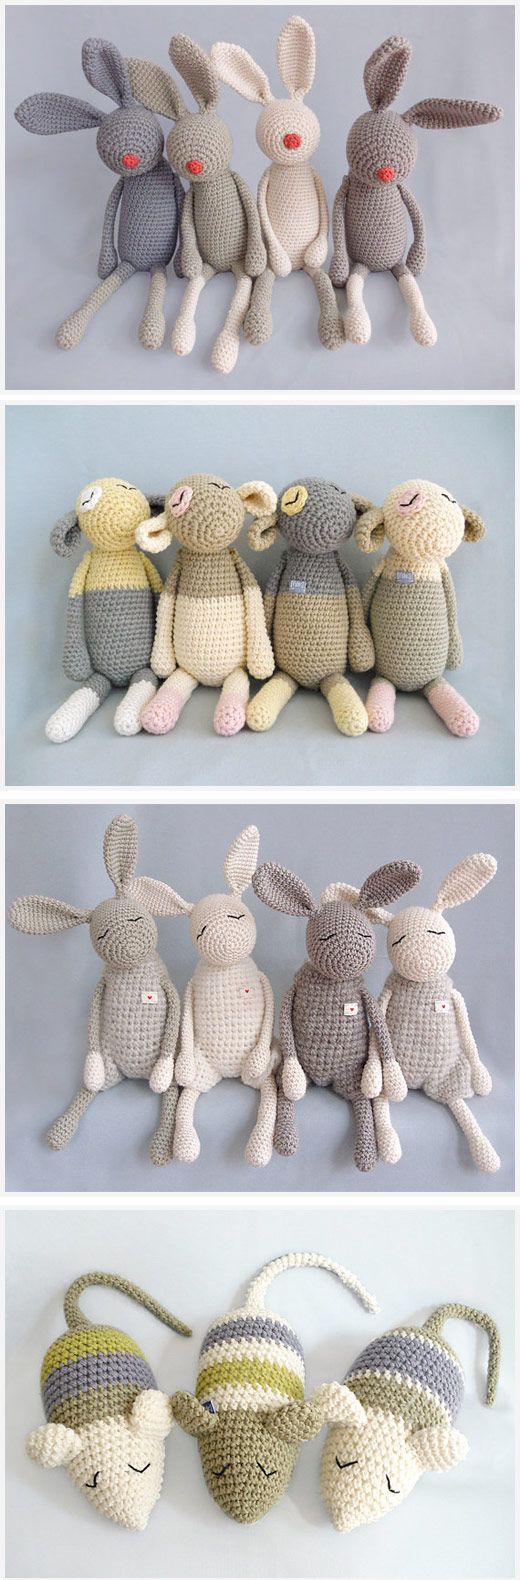 Eineldee, Handmade Toys, Bunnies, Sheeps, Mice